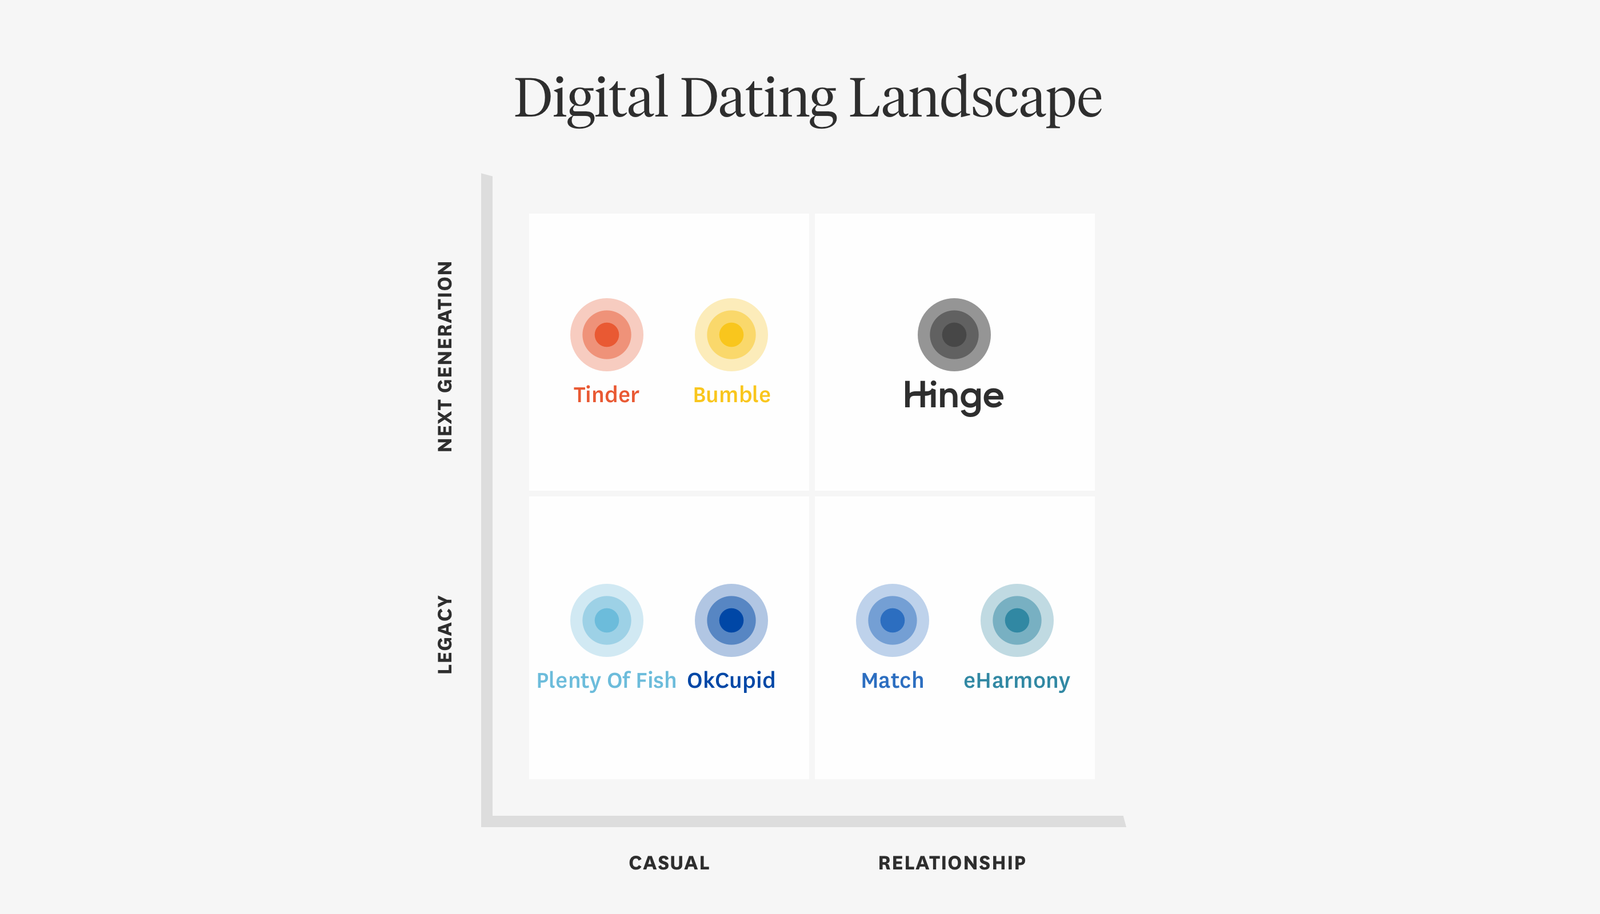 The digital dating landscape, according to Hinge.